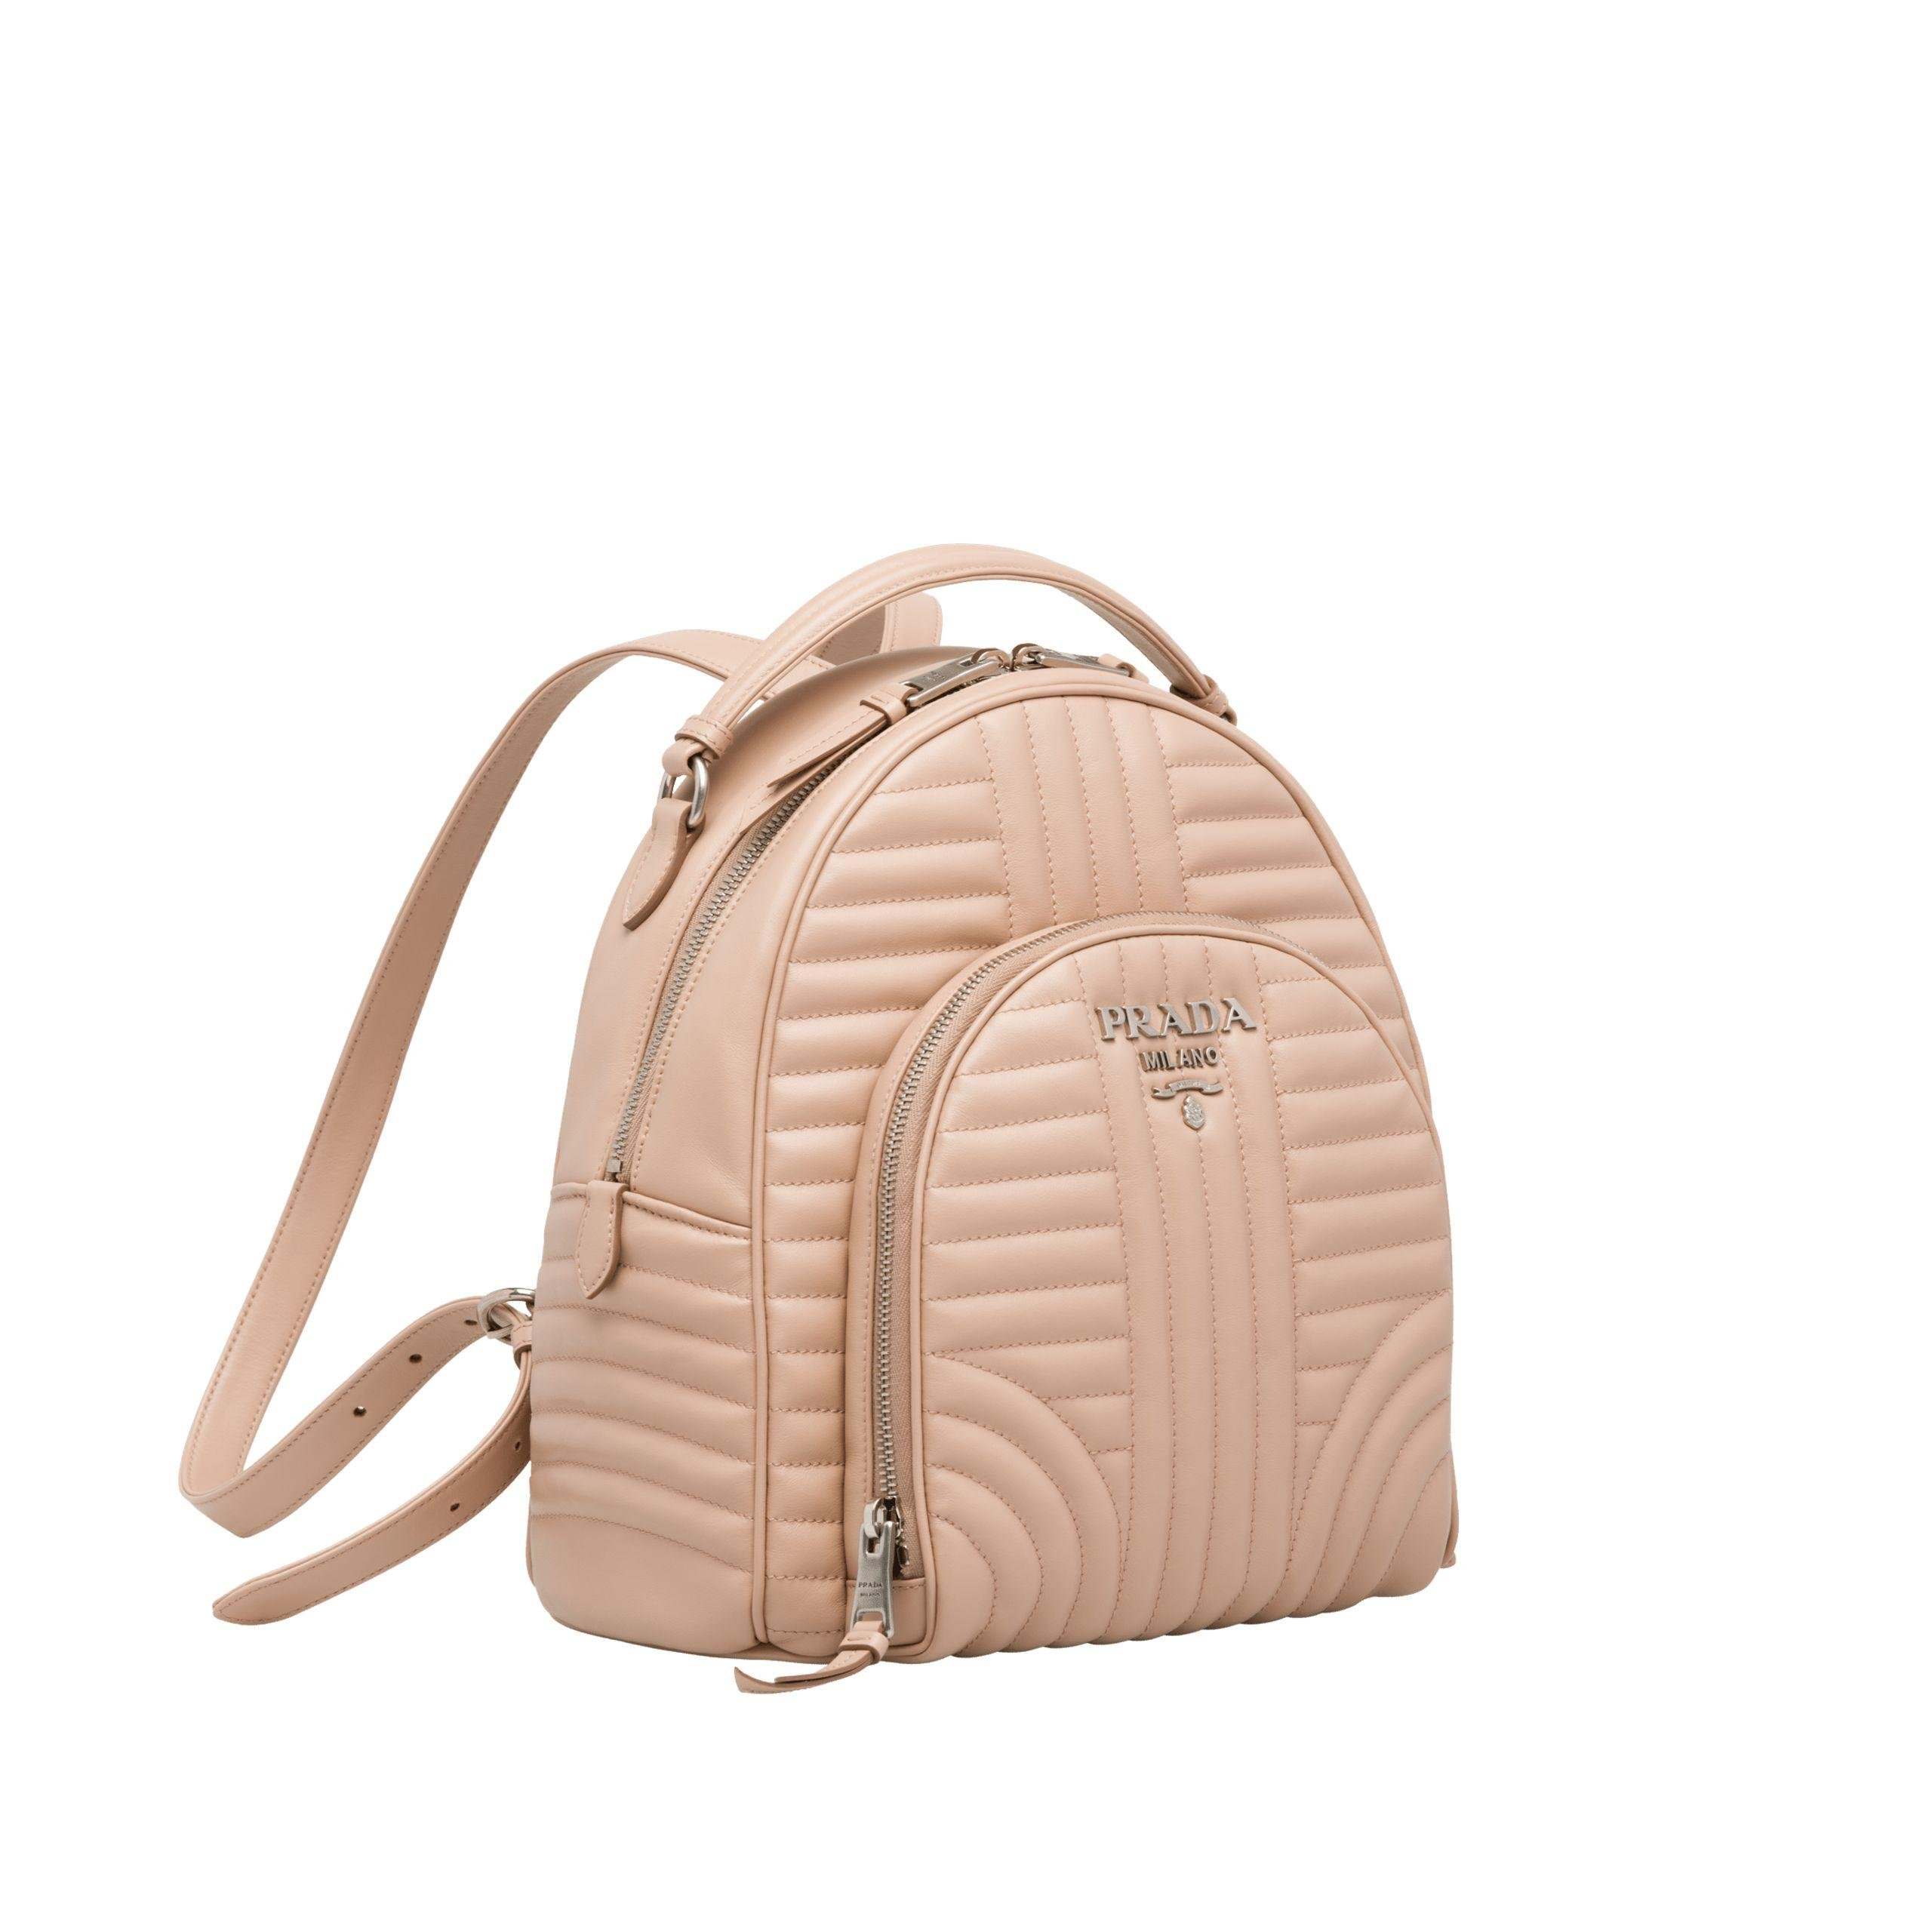 0280eabee6d94 Prada - Natural Diagramme Leather Backpack - Lyst. View fullscreen